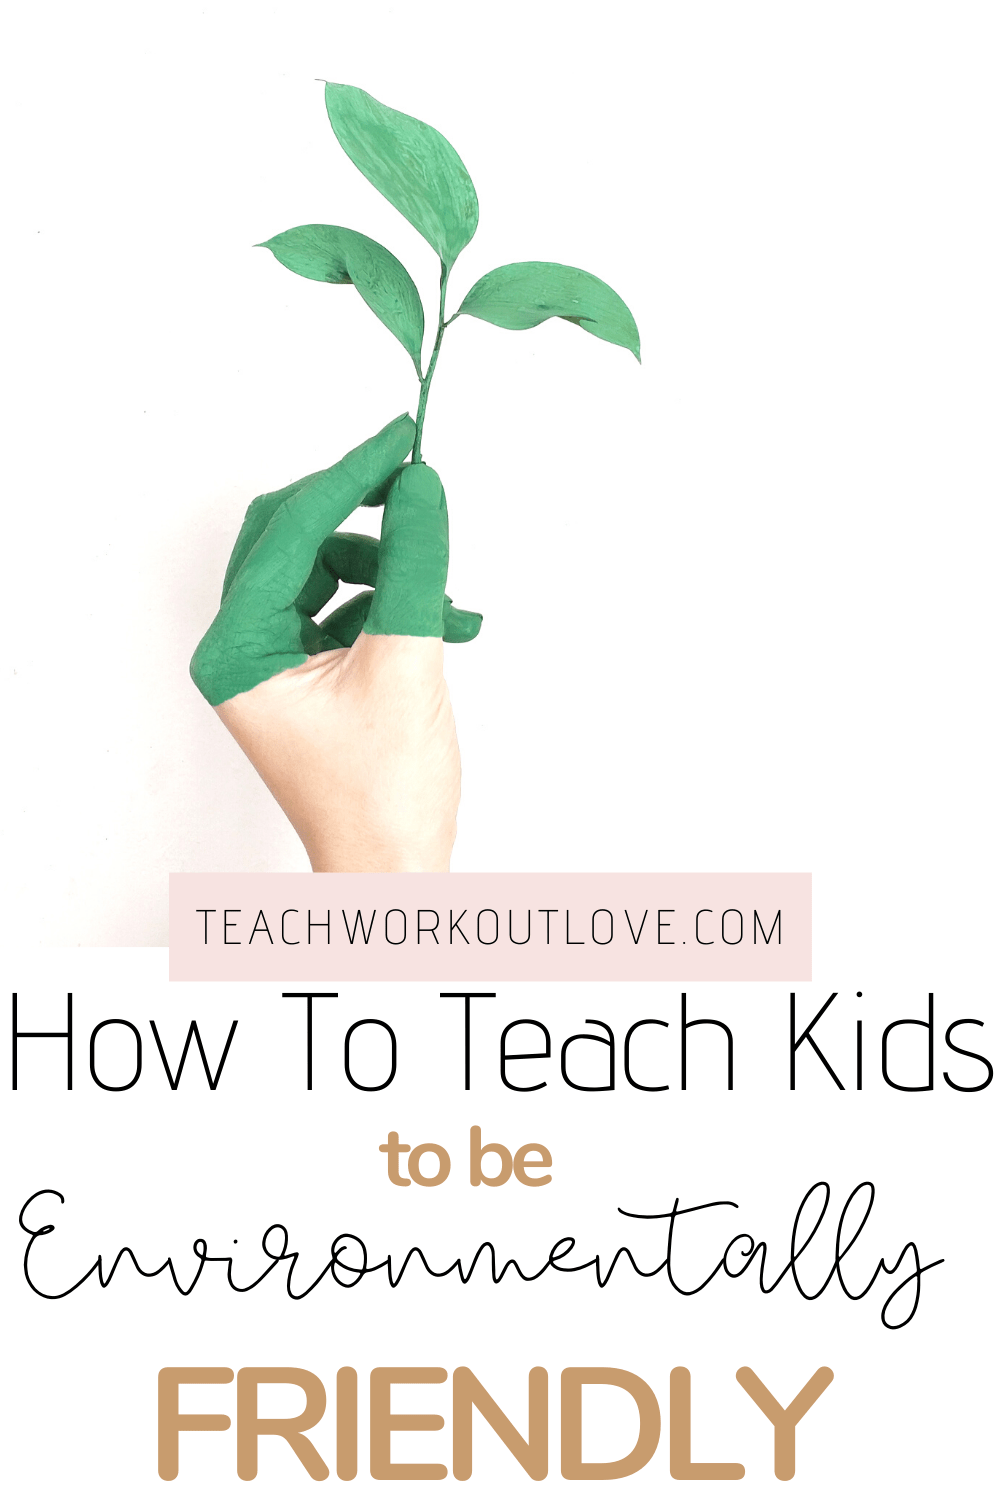 Here is how to teach kids to be environmentally friendly. Follow these suggestions to raise an environmentally conscious child.